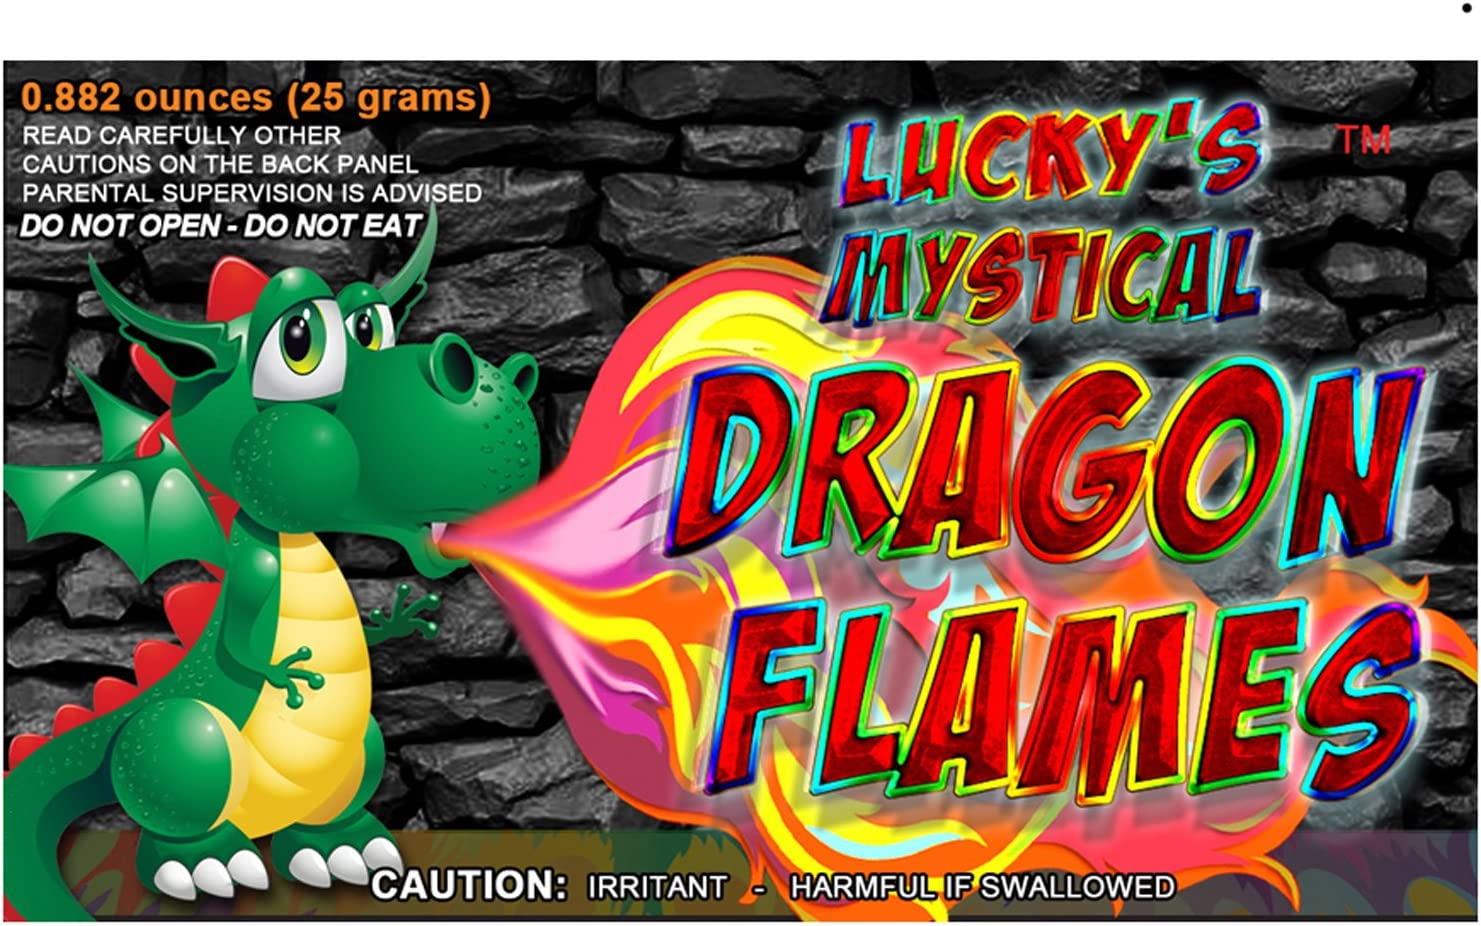 Mystical Fire Dragon Flames Flame Colorant Vibrant Long-Lasting Pulsating Flame Color Changer for Indoor or Outdoor Use 0.882 oz Packets 6 Pack